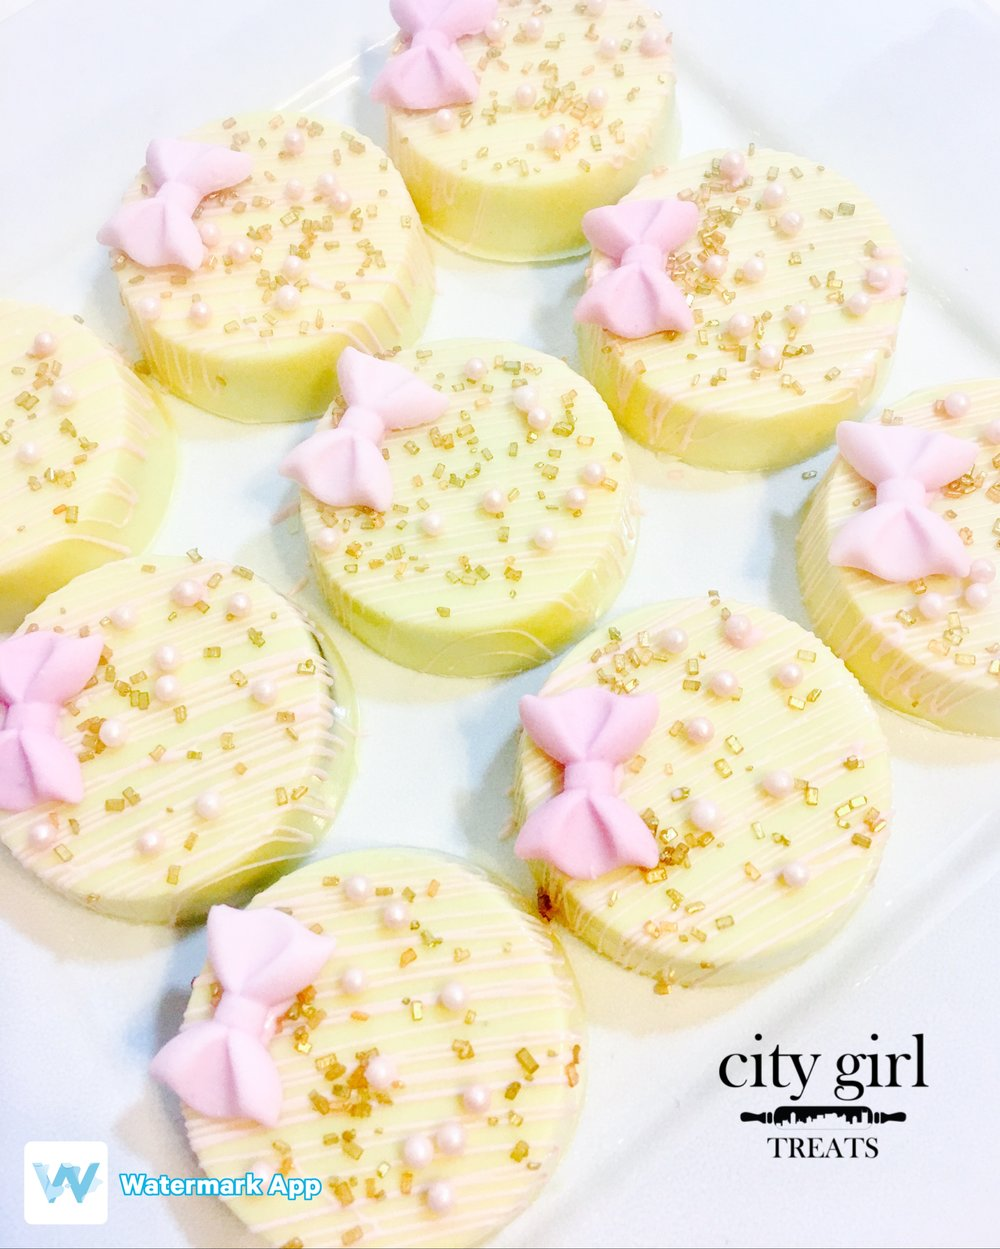 Nashville Custom Cookies Nashville TN Based Bakery, City Girl Treats Nashville Cookies